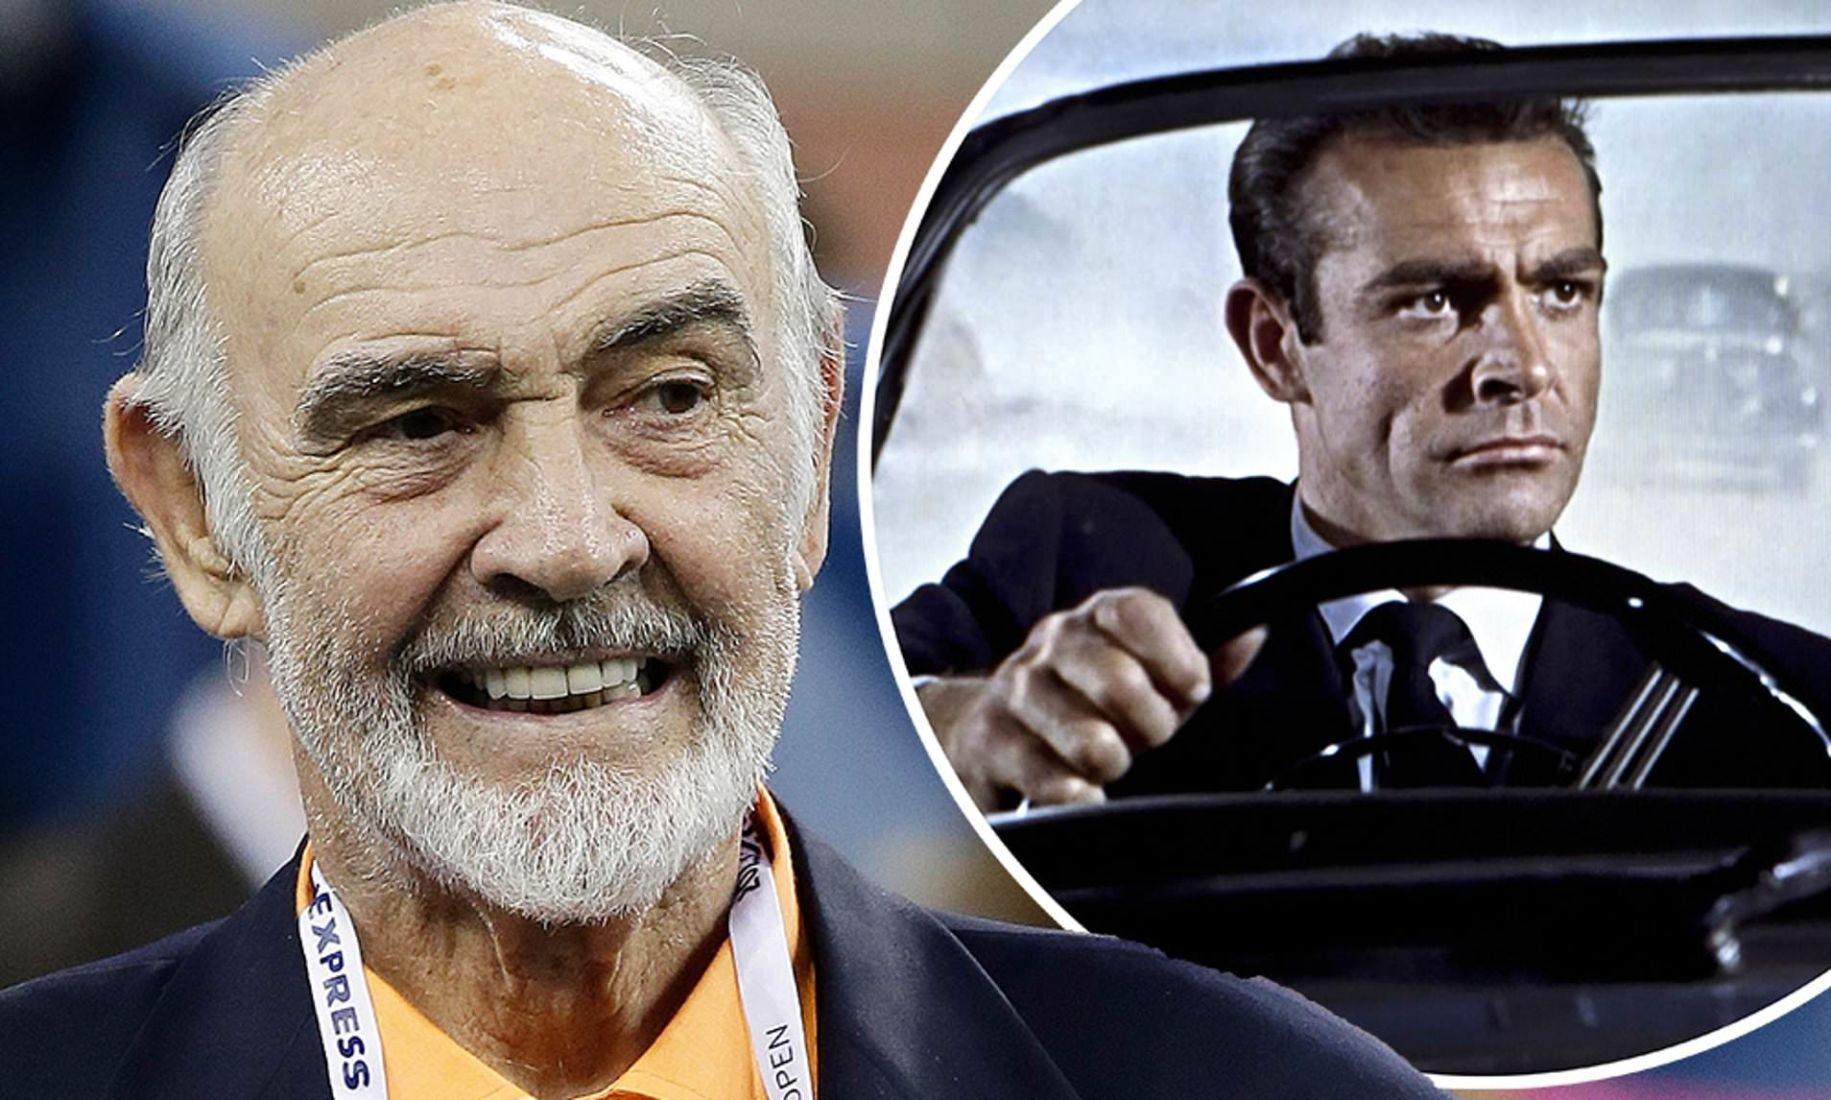 Sir Sean Connery dies at 90 years of age | The Thaiger